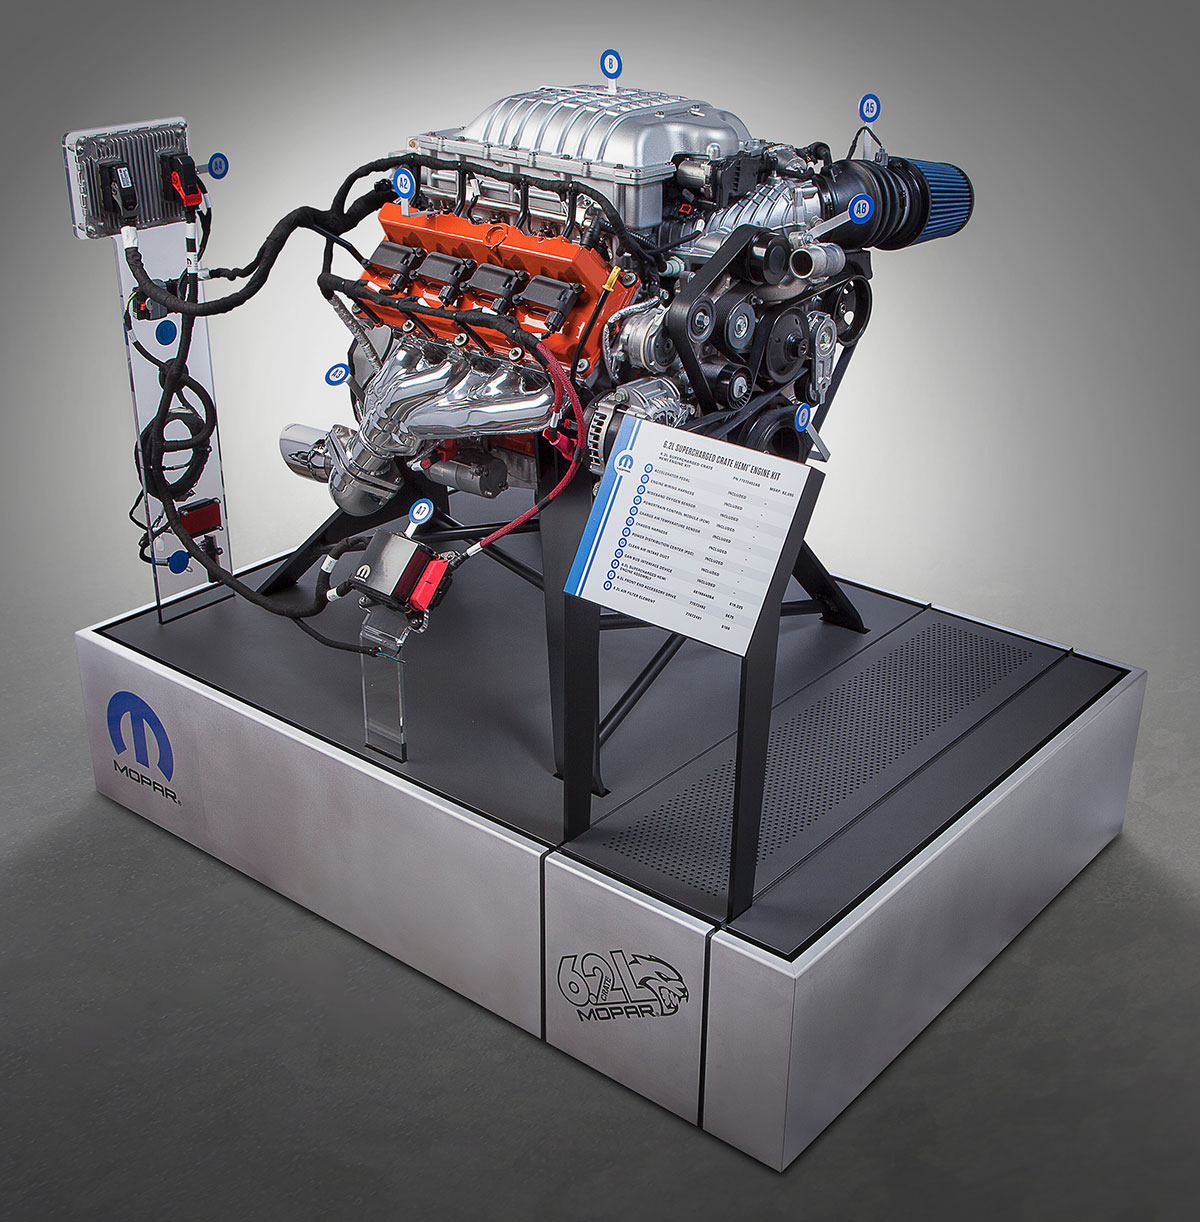 6.2L Hemi crate engine